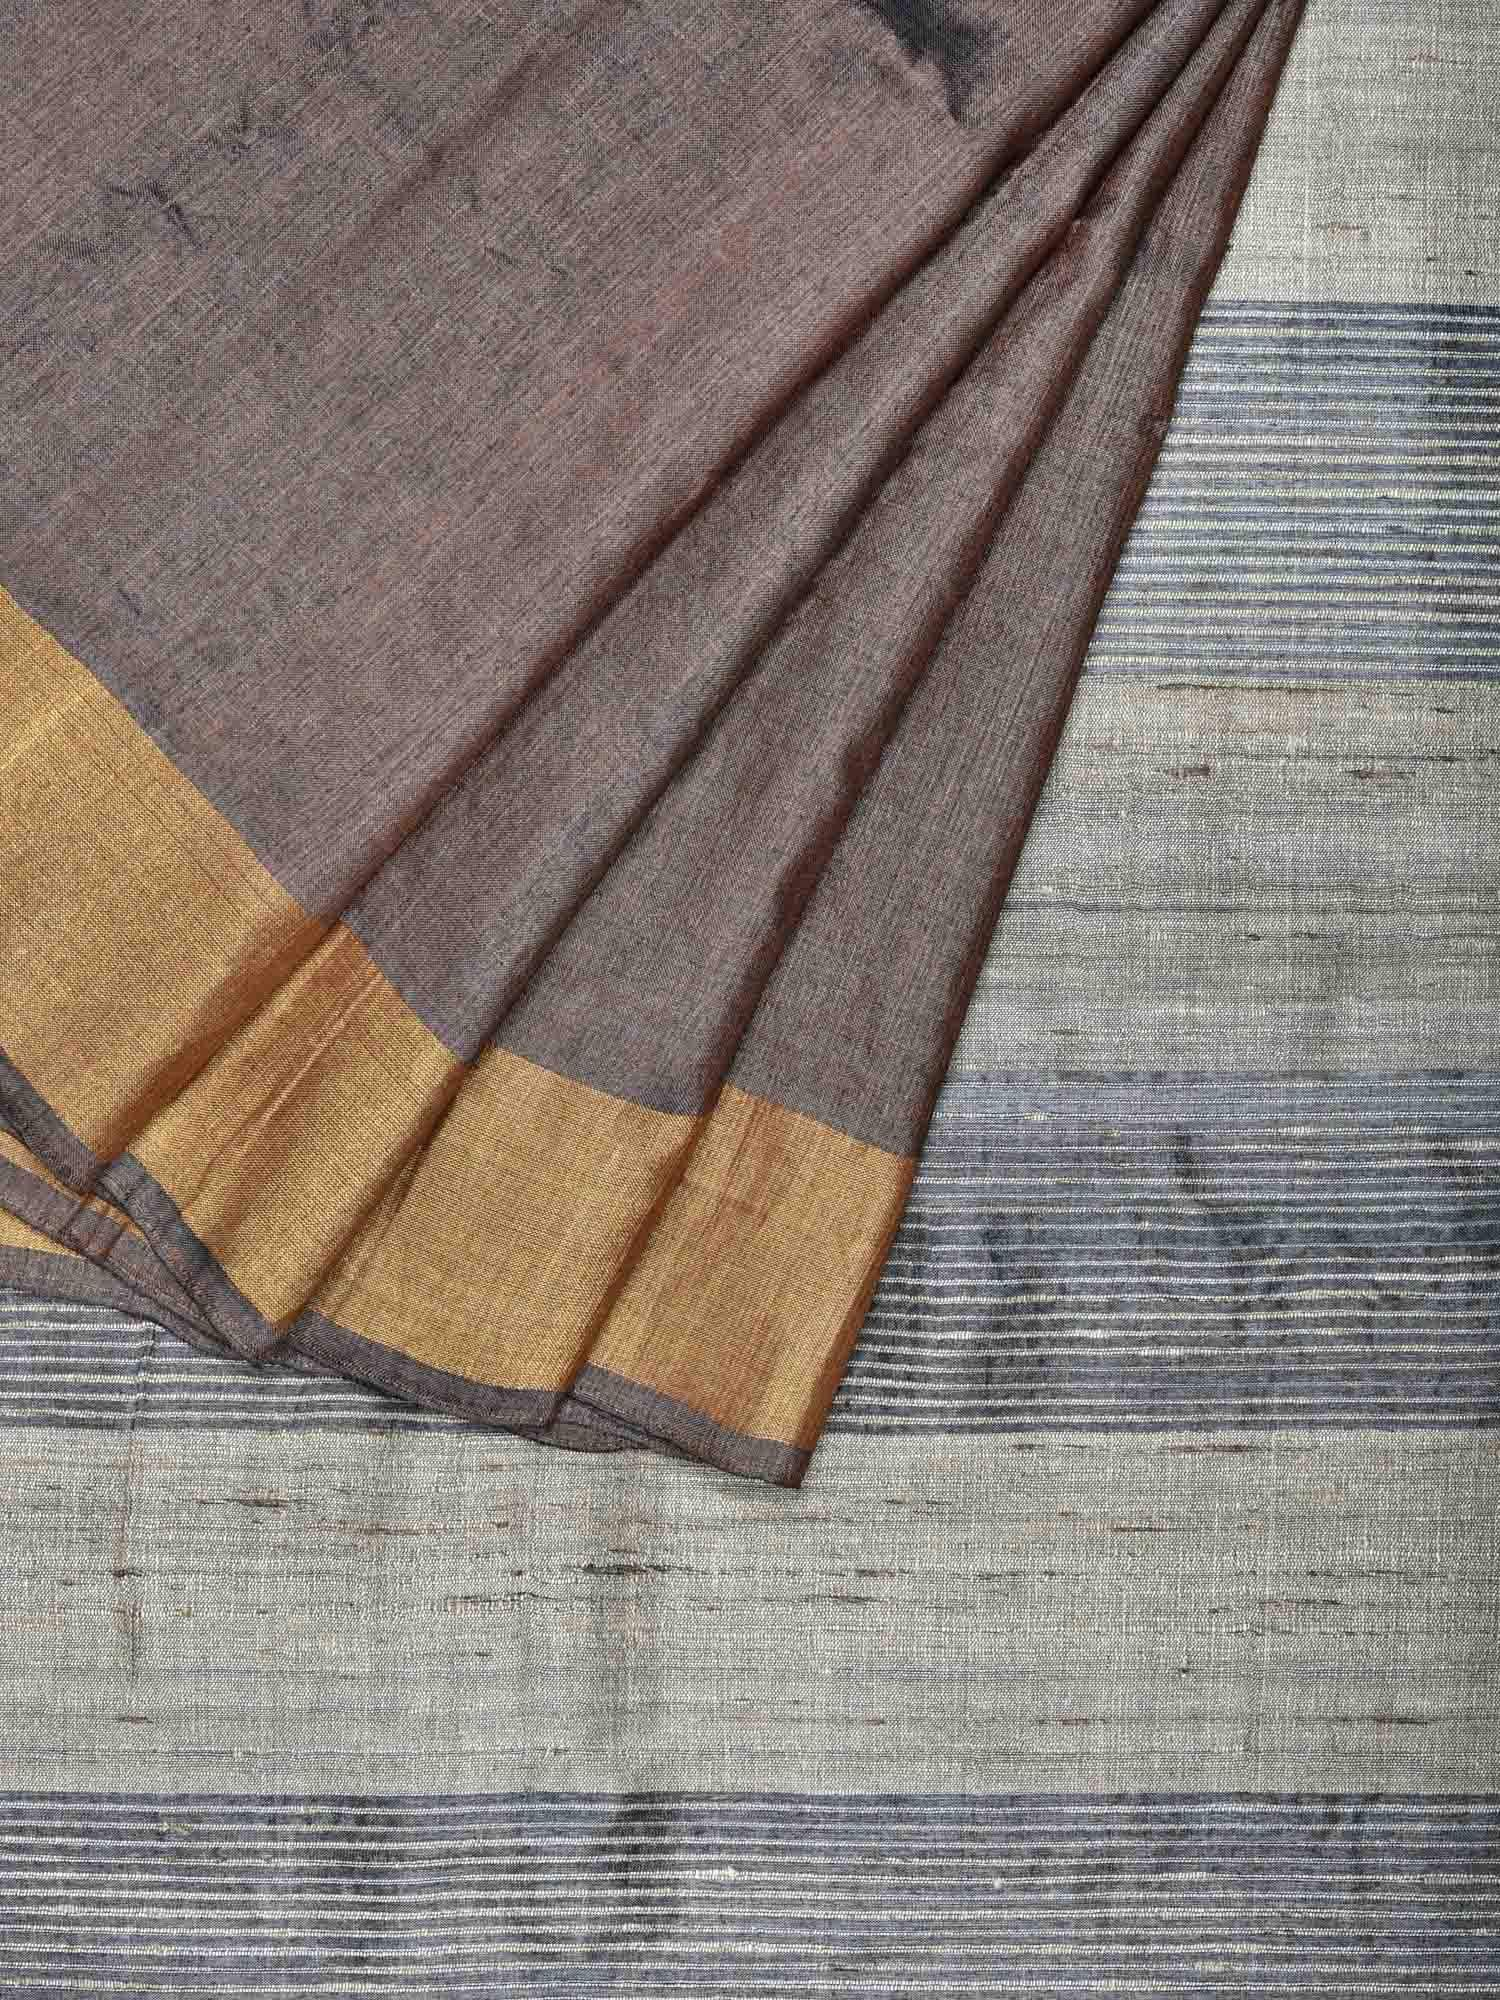 Grey Tussar Handloom Saree with Strips Pallu Design o0256